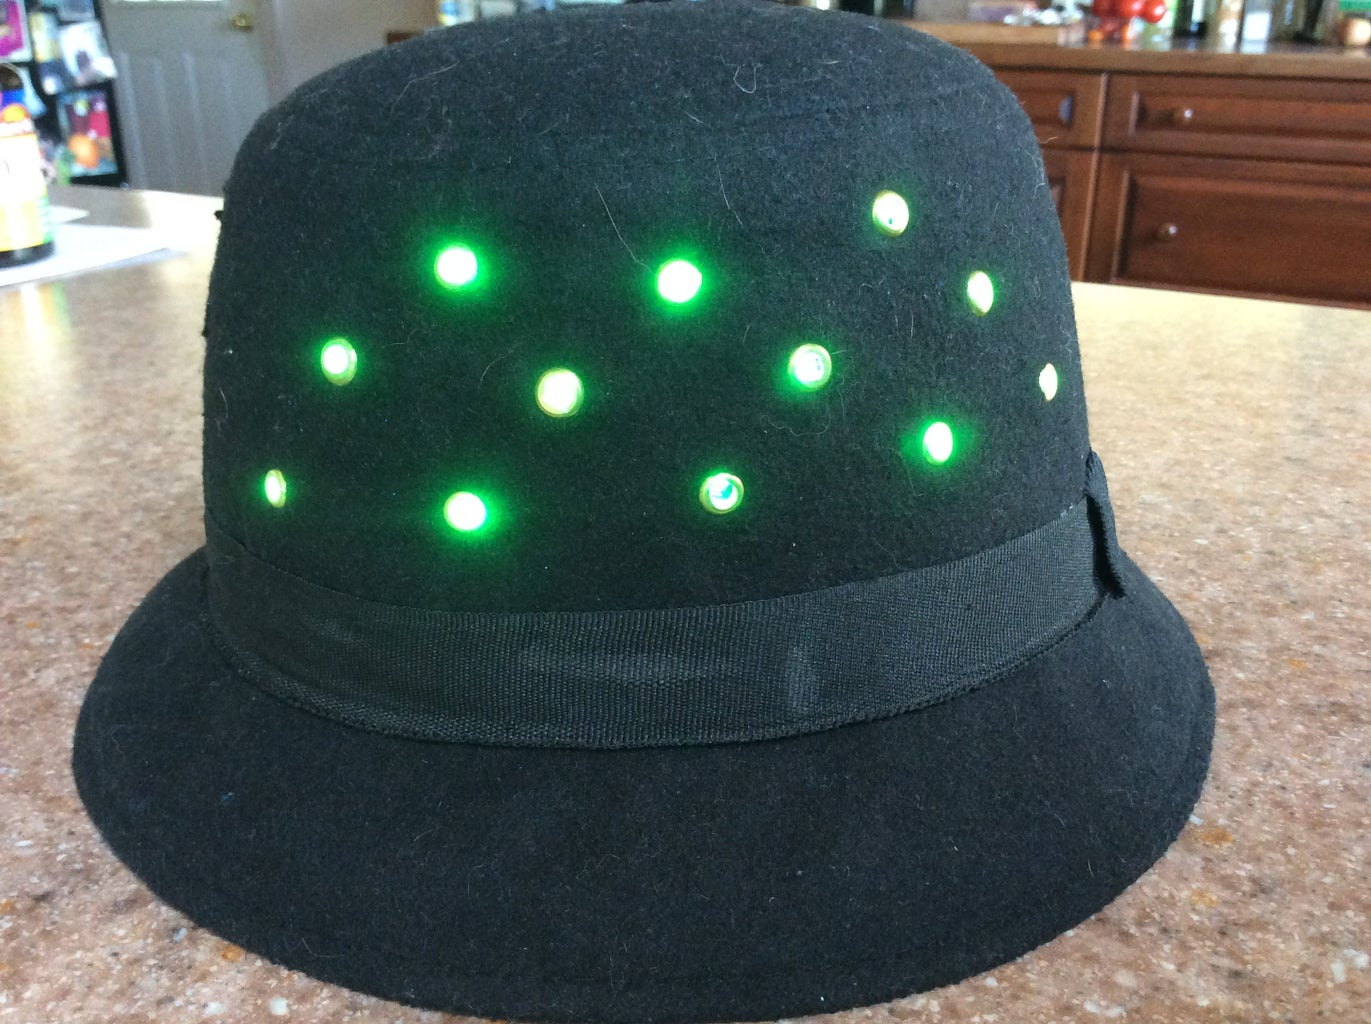 Wear Your New CheerLights Hat With Pride